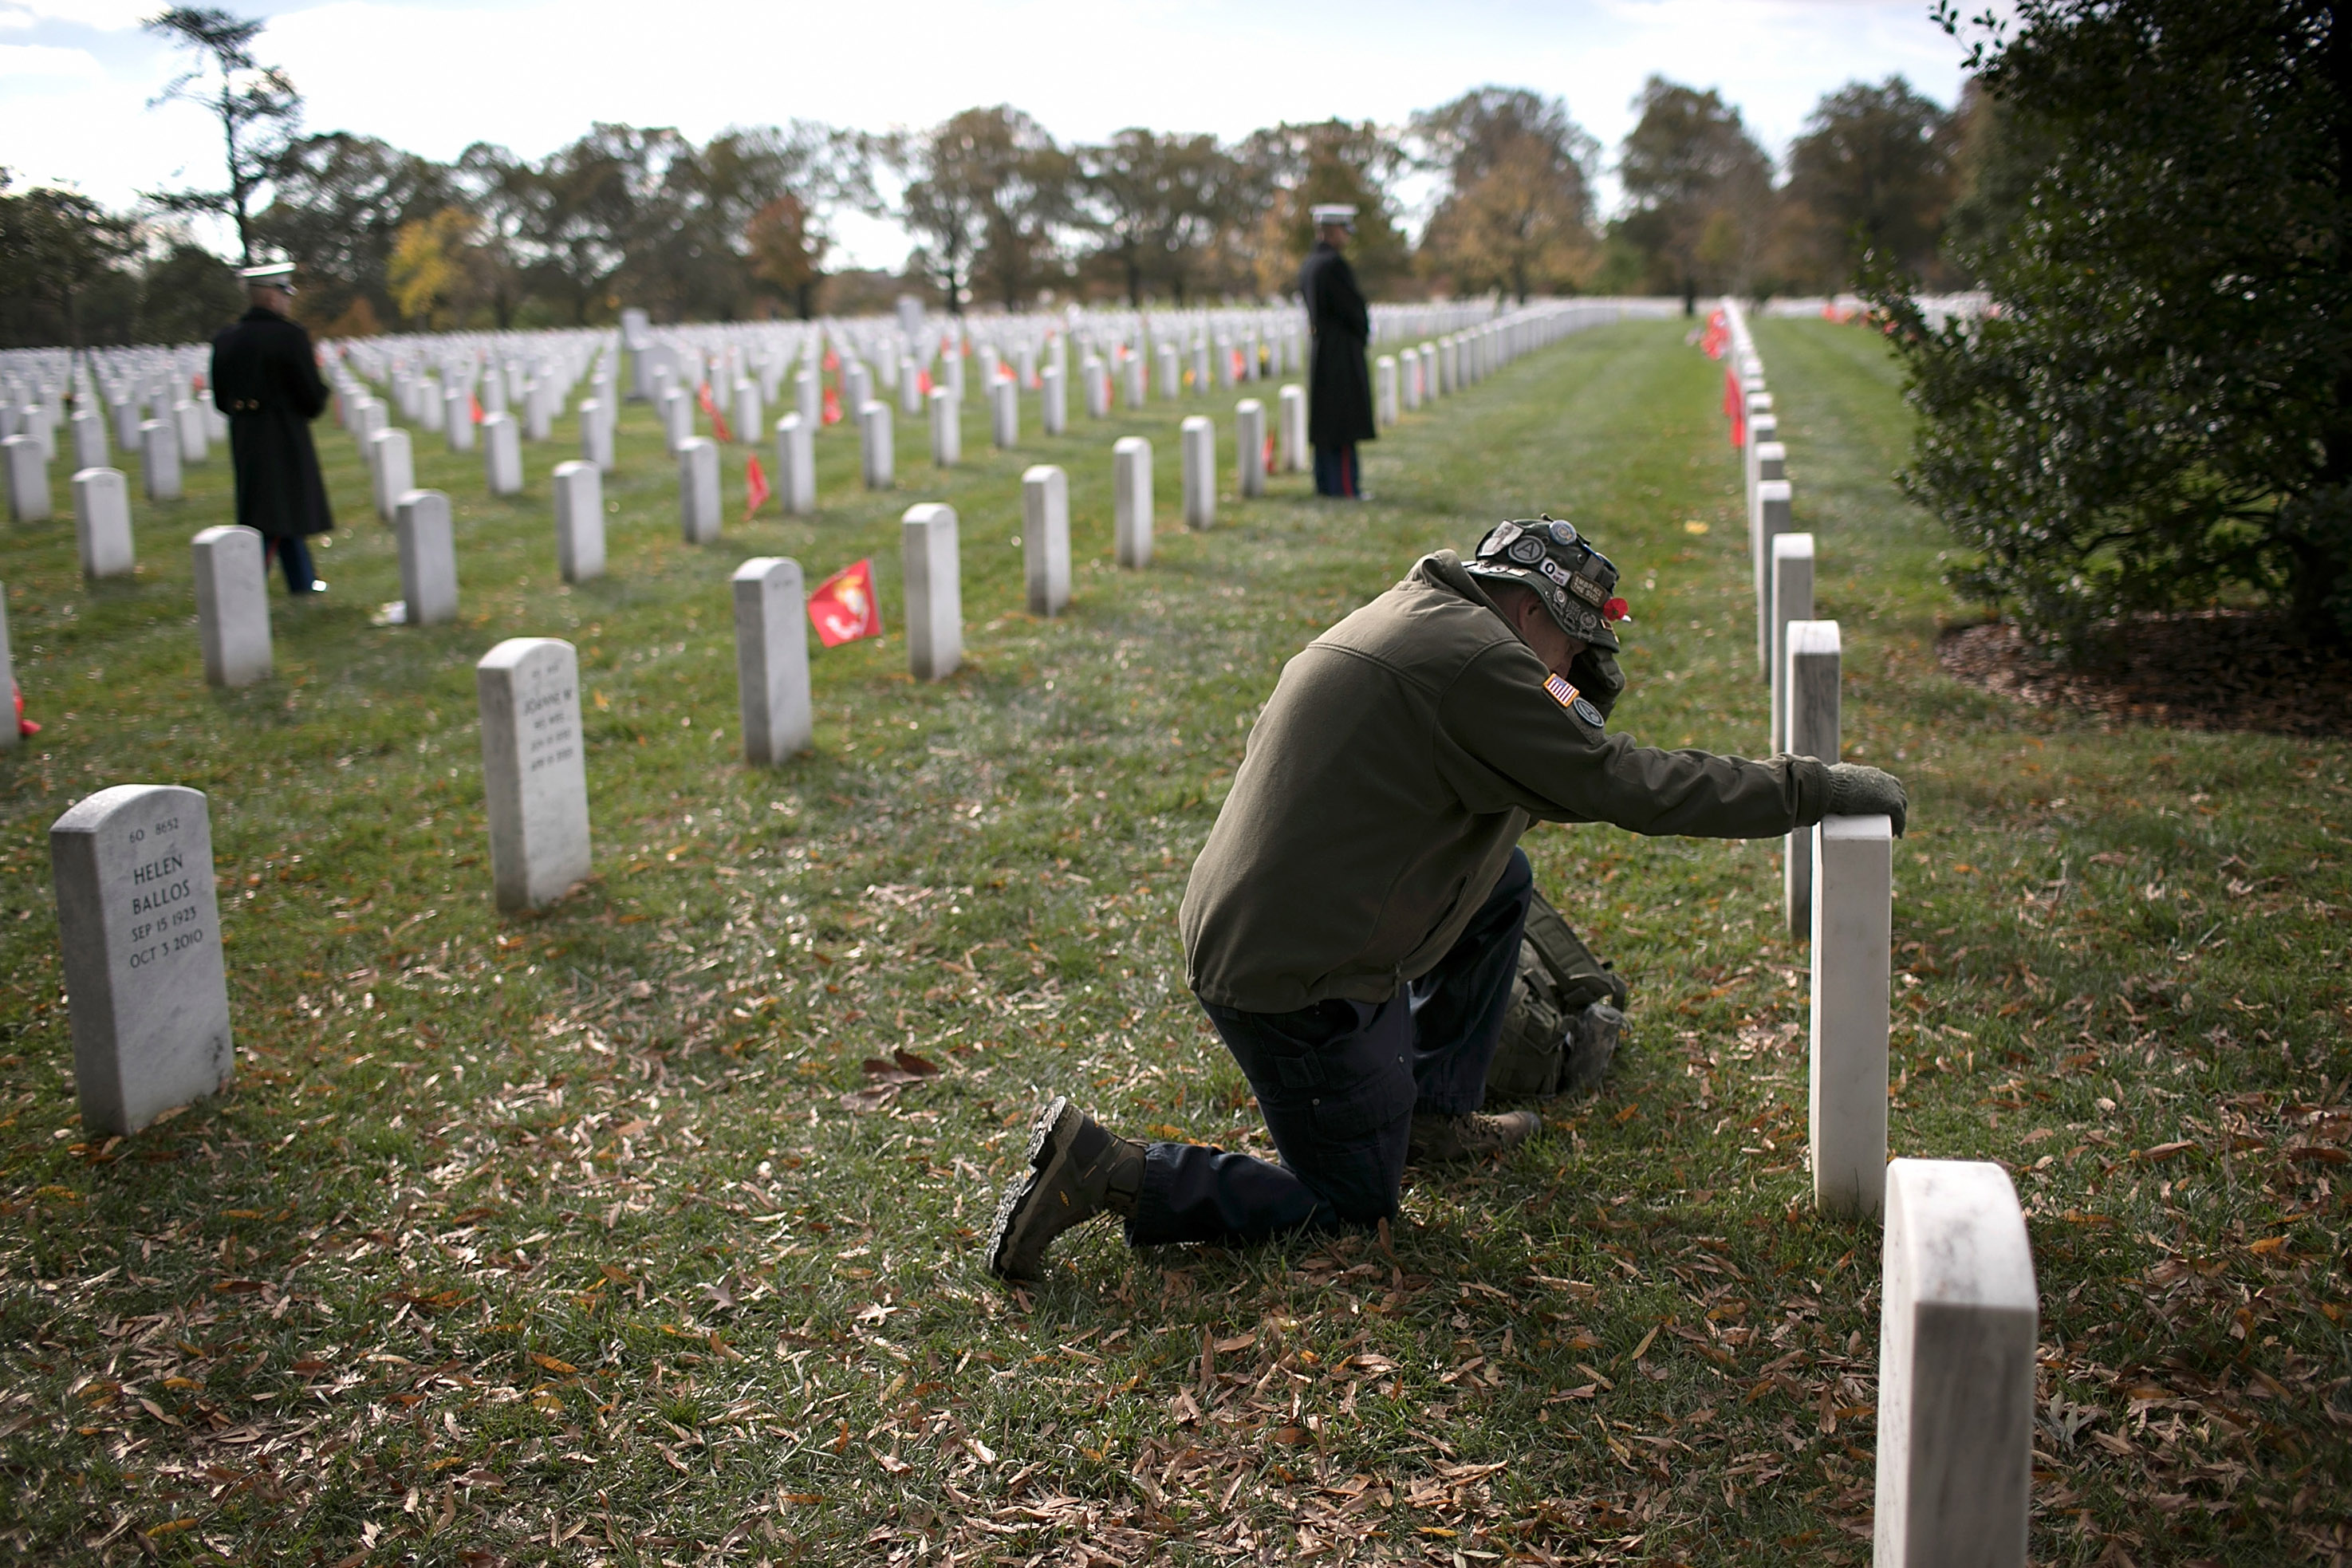 Gulf War veteran John Schoon visits the gravesite of U.S.M.C. Sgt Christopher Hrbek one day before Veterans Day at Arlington National Cemetery November 10, 2017 in Arlington, Virginia. Veterans Day, observed on November 11, honors all members of the U.S. military who served in the United States Armed Forces. Win McNamee/Getty Images